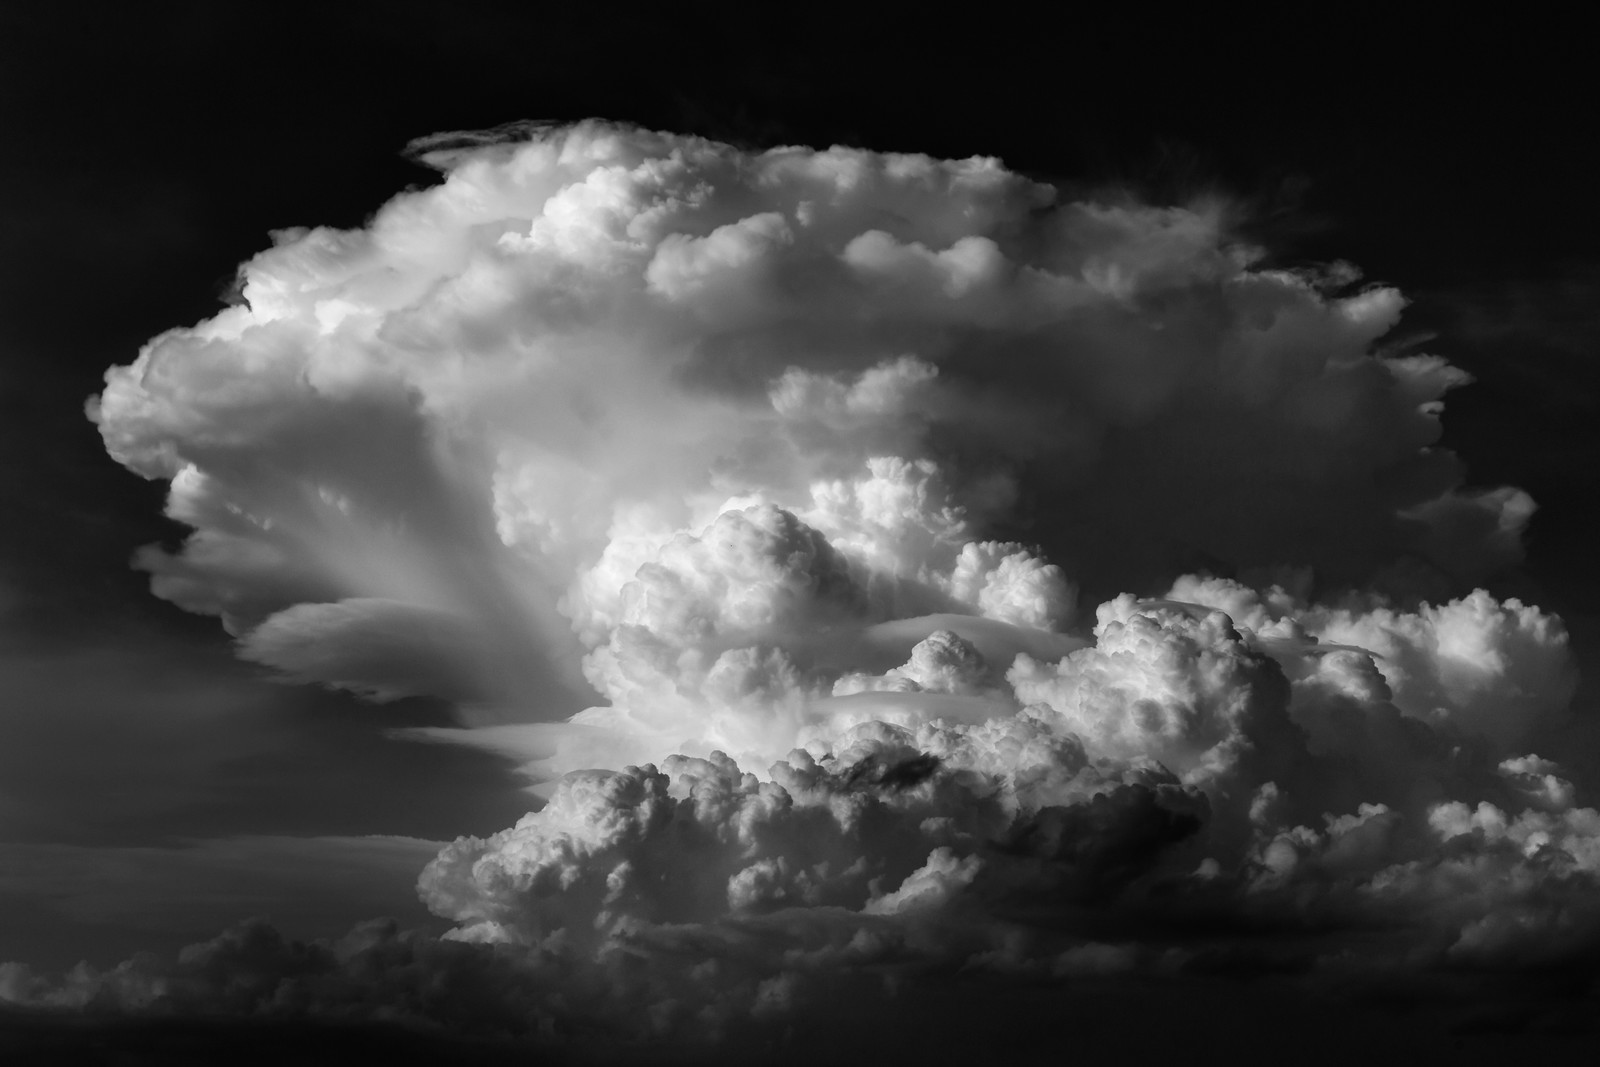 Summer Storm - Monochrome #2